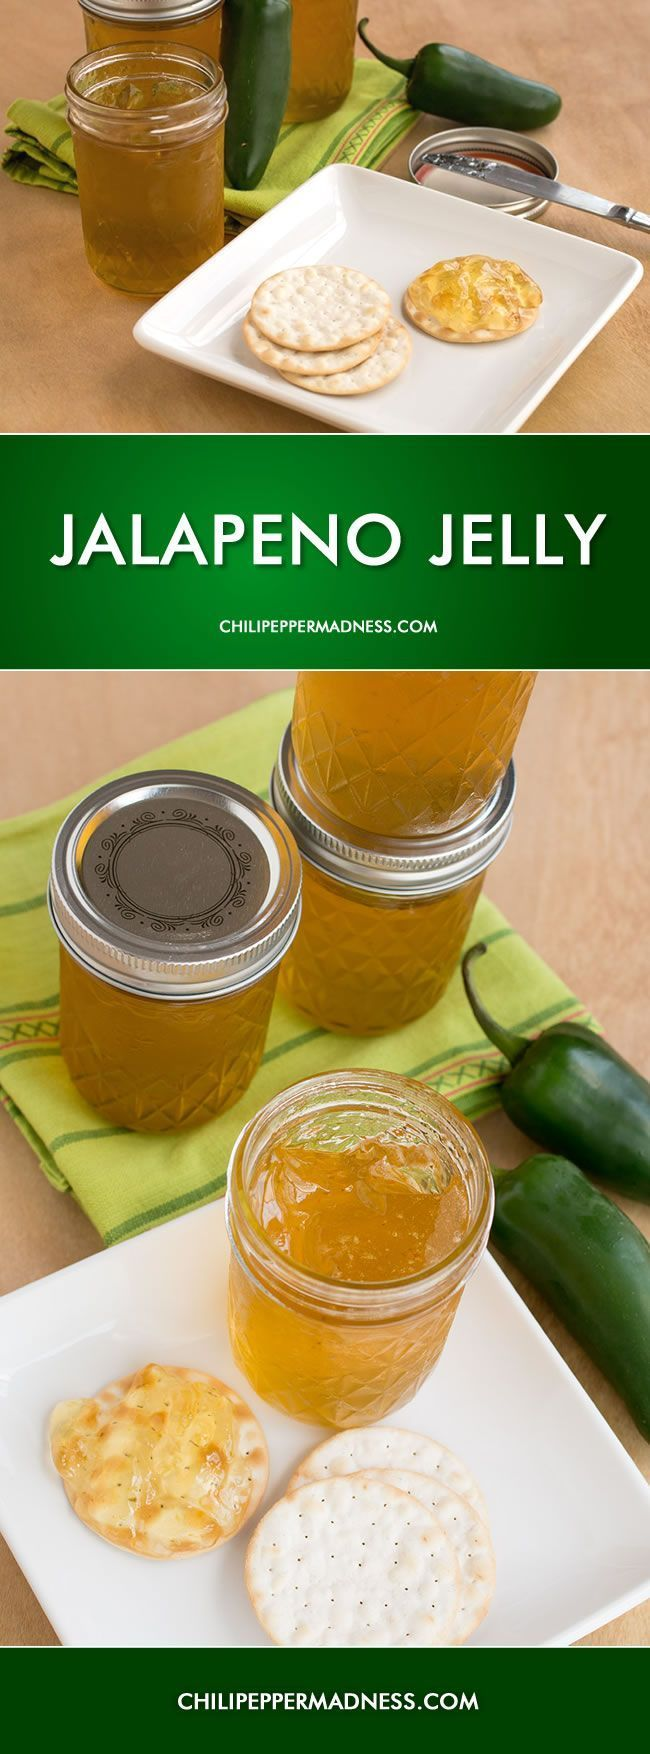 Jalapeno Jelly, a great topping for crostinis or crackers for your next party | Chili Pepper Madness